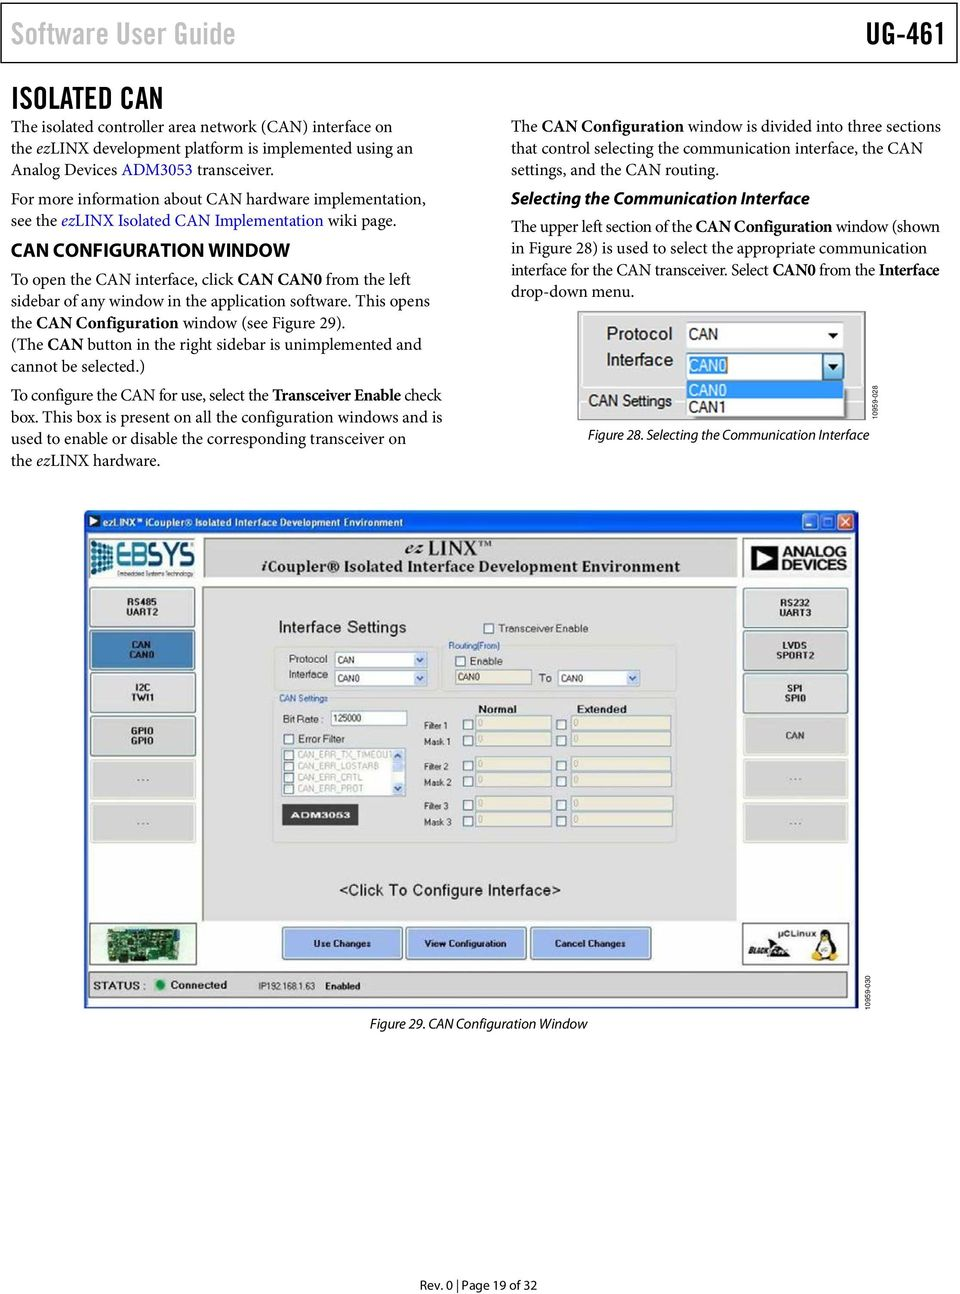 CAN CONFIGURATION WINDOW To open the CAN interface, click CAN CAN0 from the left sidebar of any window in the application software. This opens the CAN Configuration window (see Figure 29).